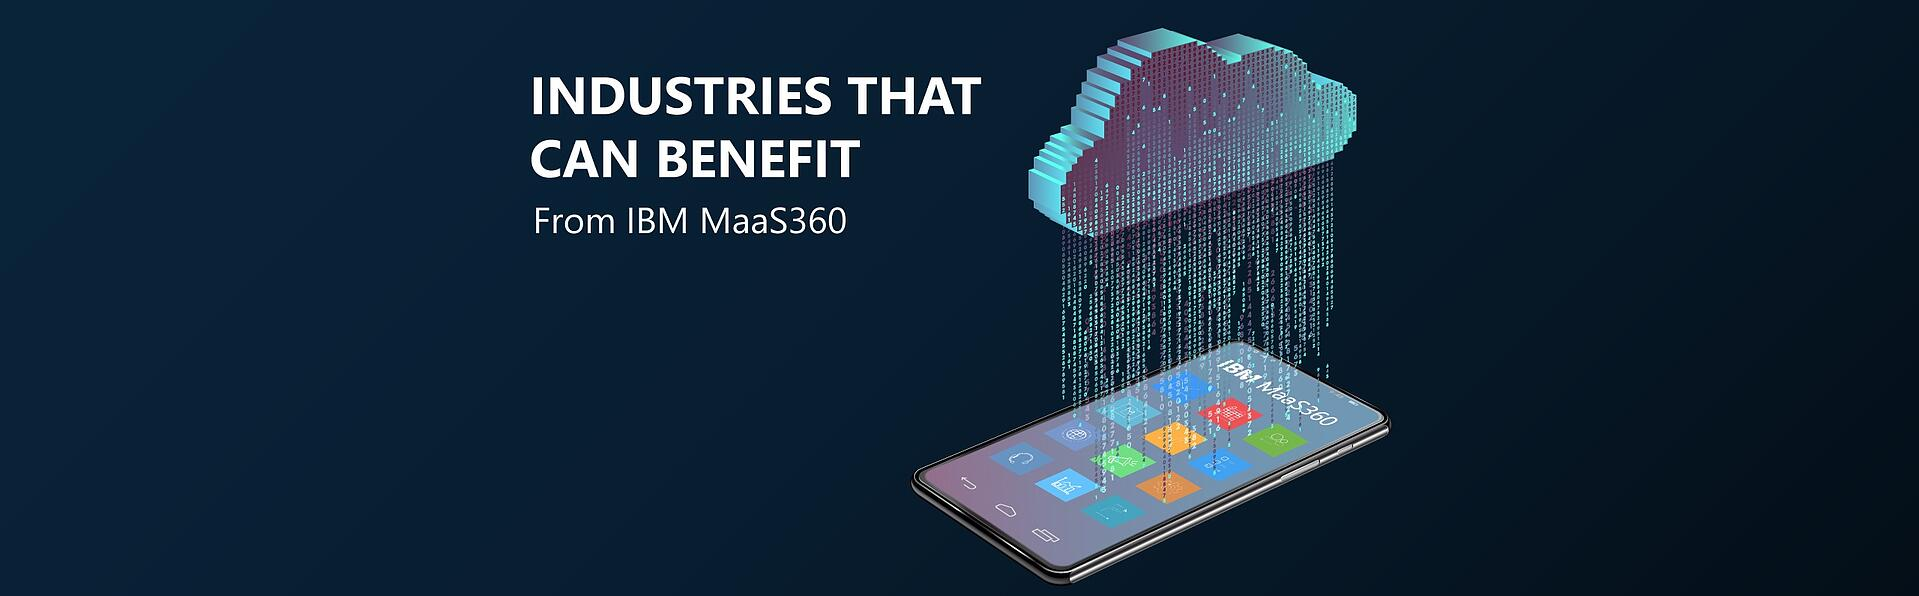 Industries that can benefit from MaaS360